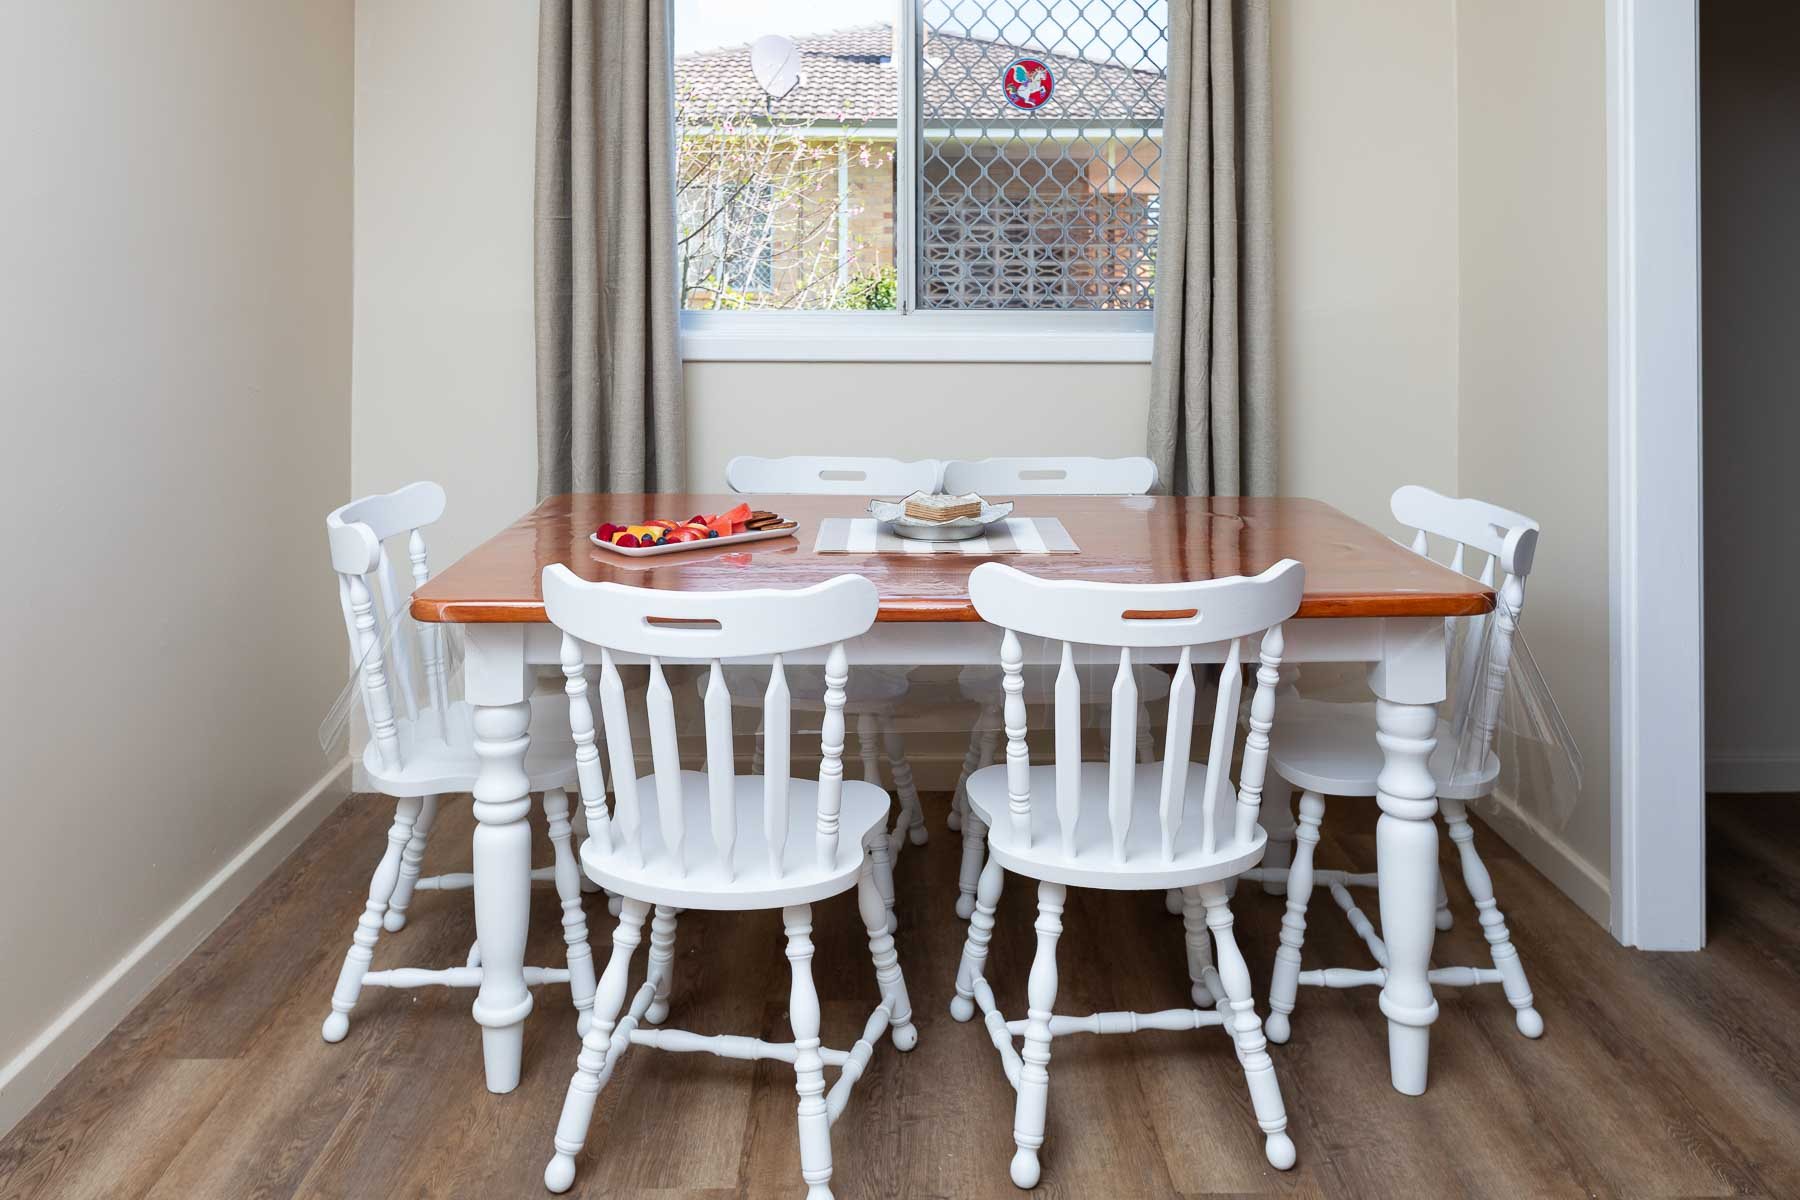 A large table with seating for 6 people is adjacent to the kitchen. There is a dresser stocked with cutlery, crockery and glassware. A reverse cycle air-conditioner cools or heats the living area.